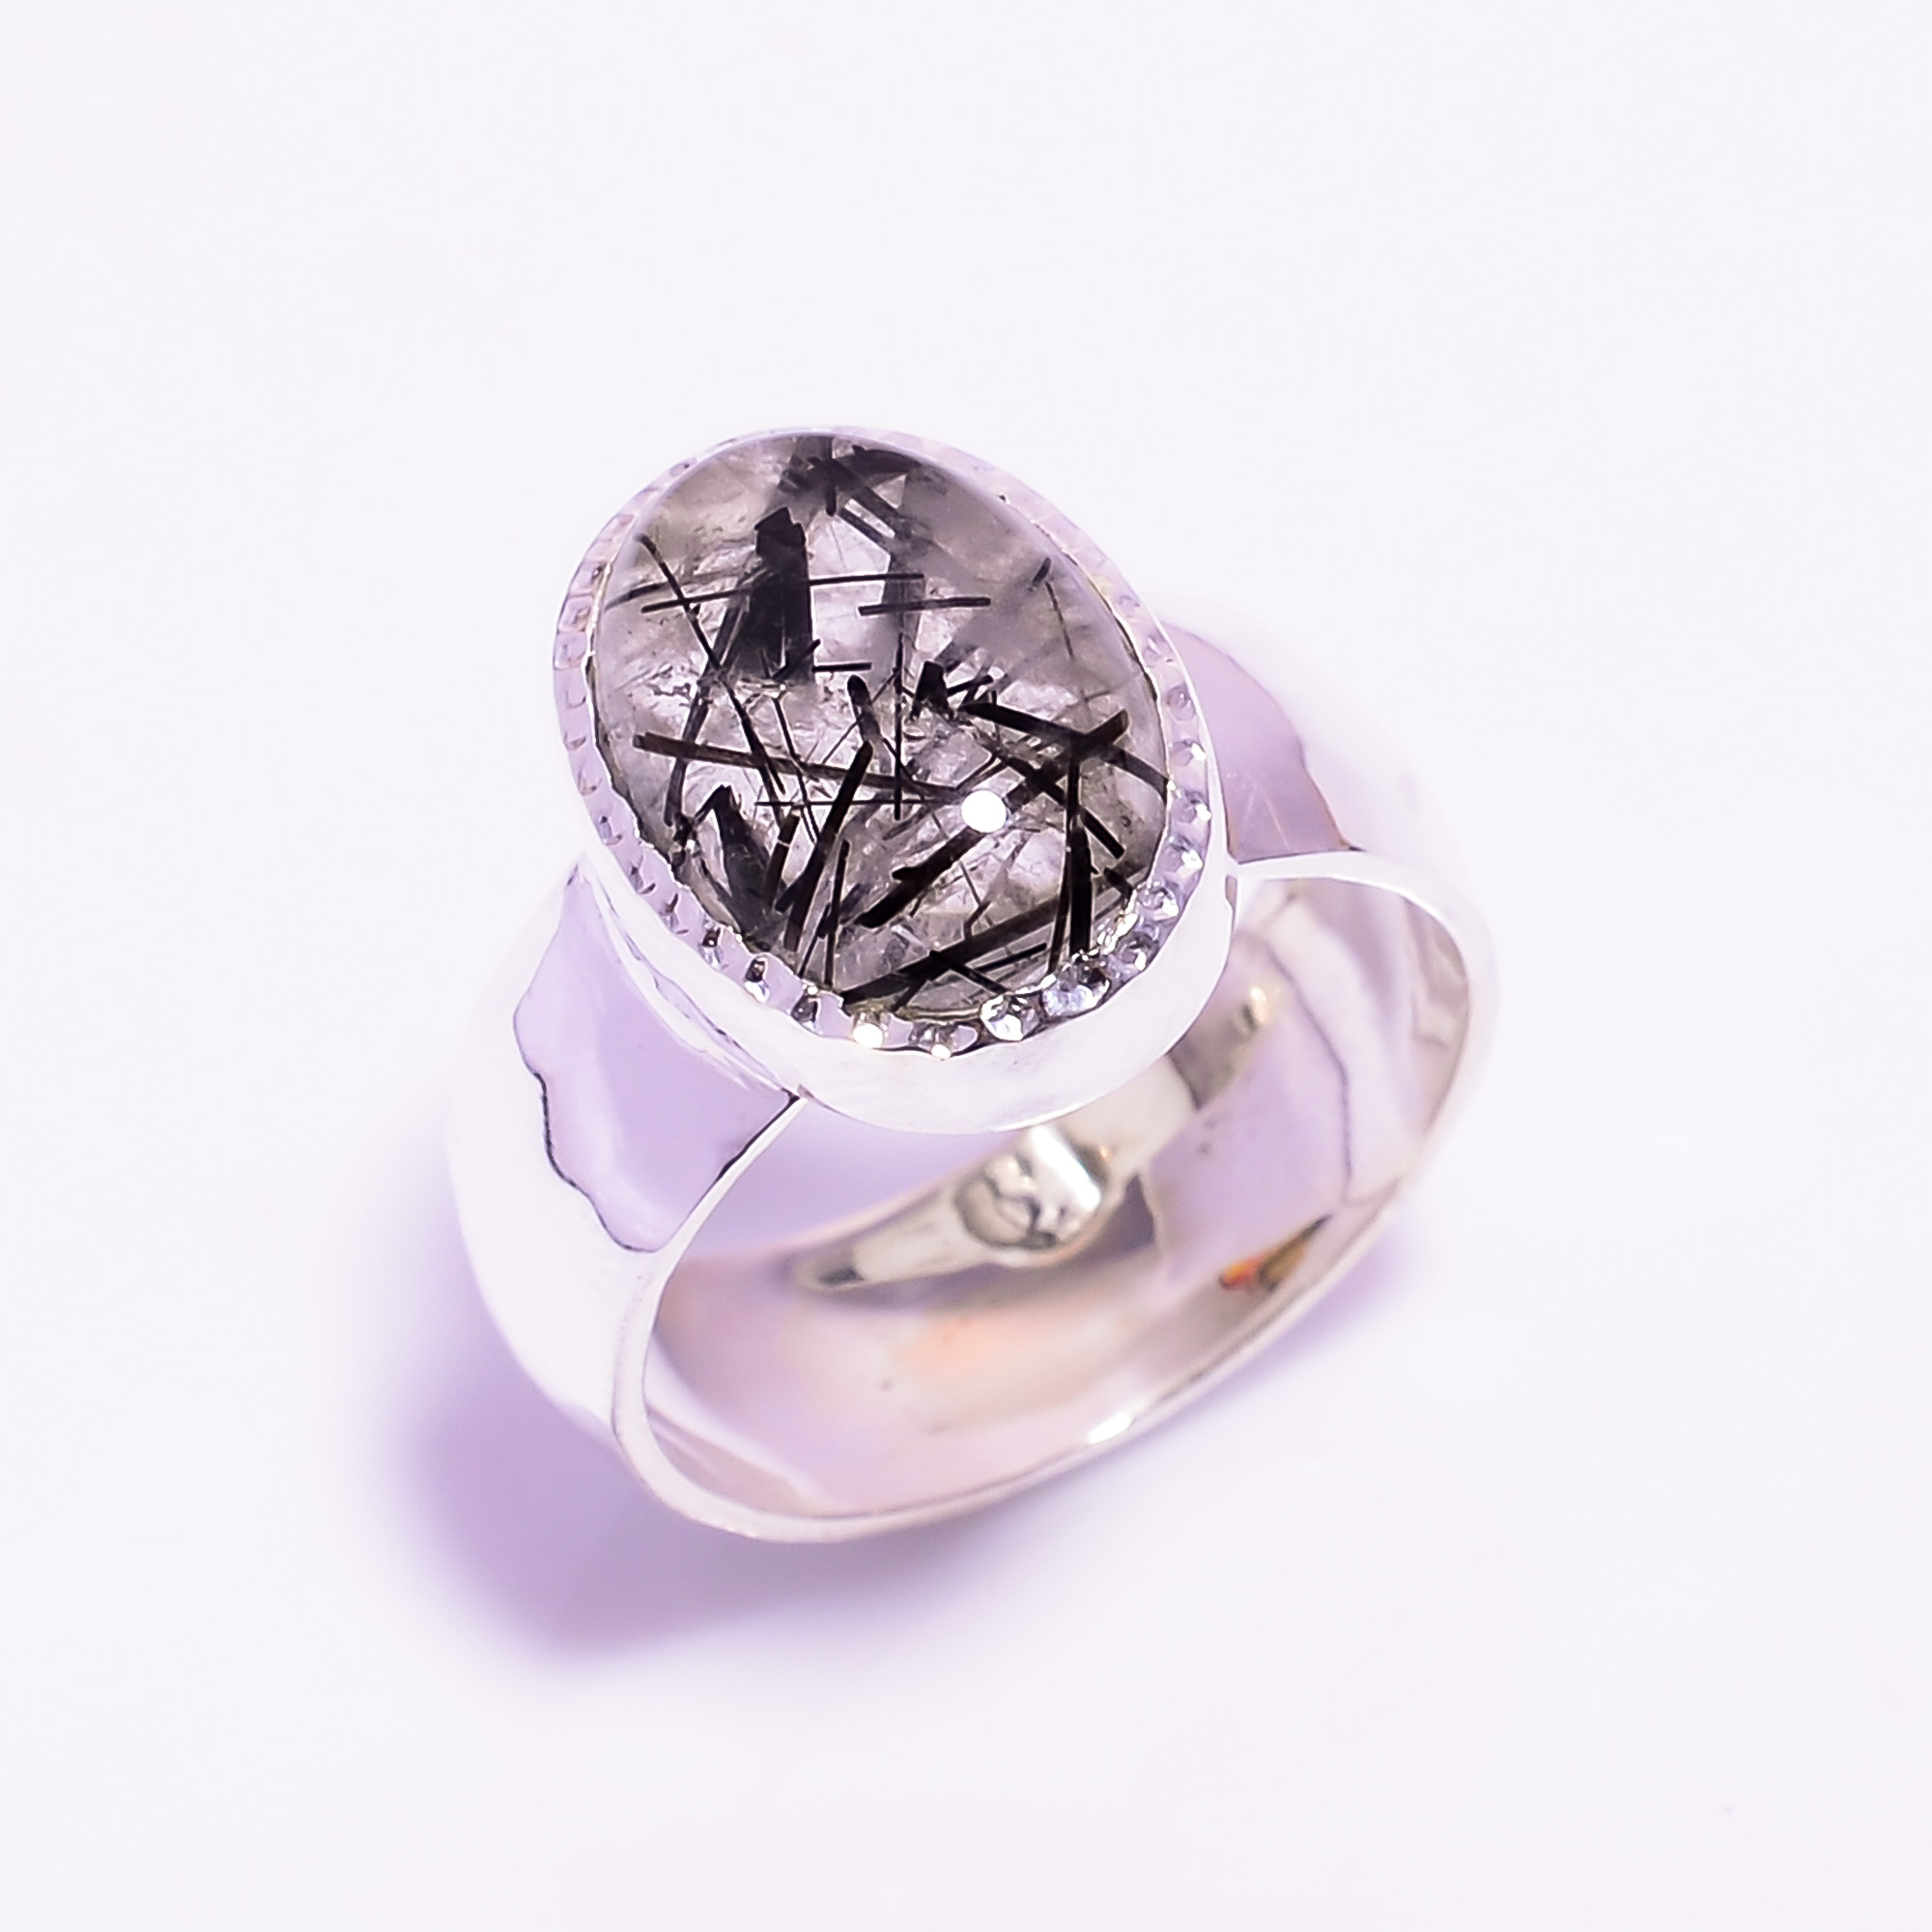 Rutile Gemstone 925 Sterling Silver Hammered Ring Size US 7.5